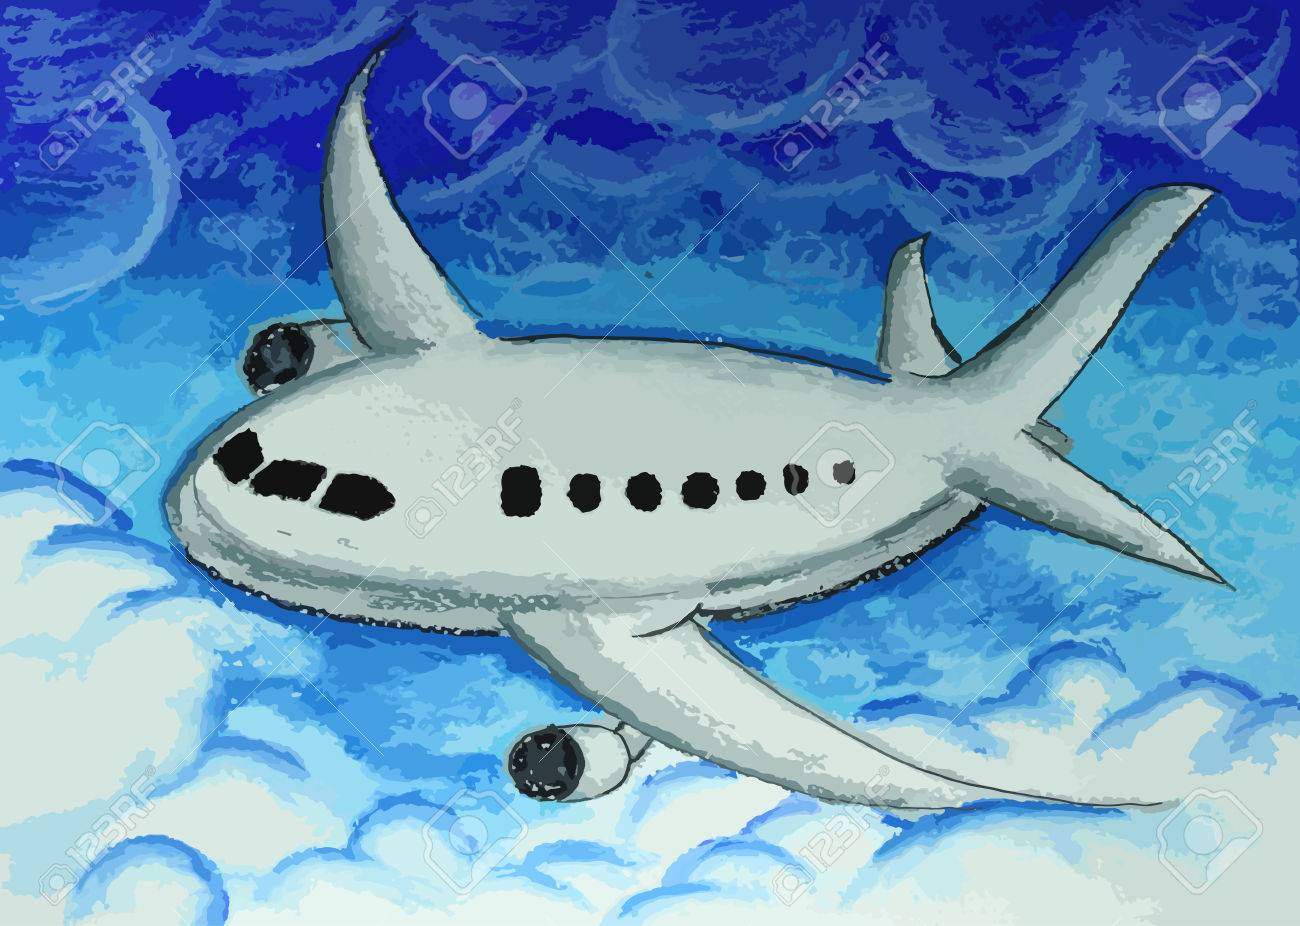 airplane in a blue sky painting background royalty free cliparts